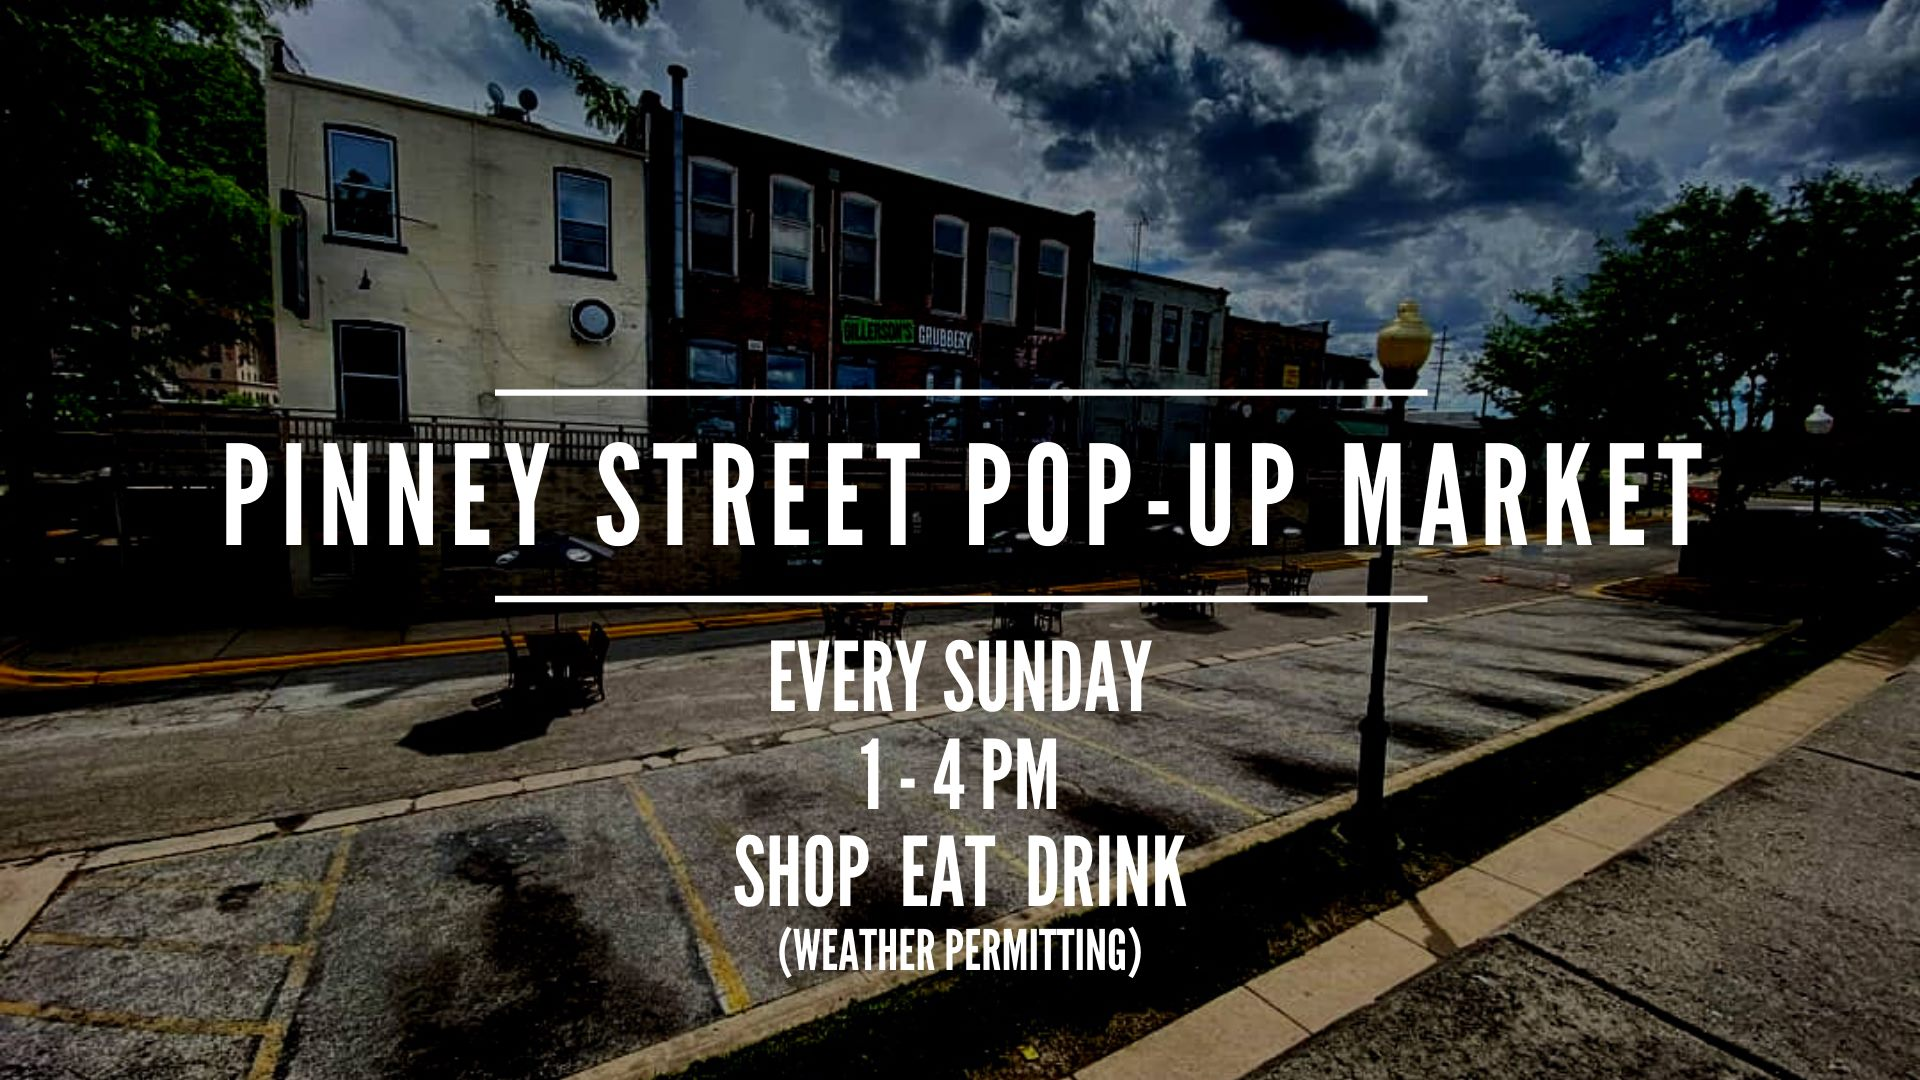 Pinney Street Pop-Up Market